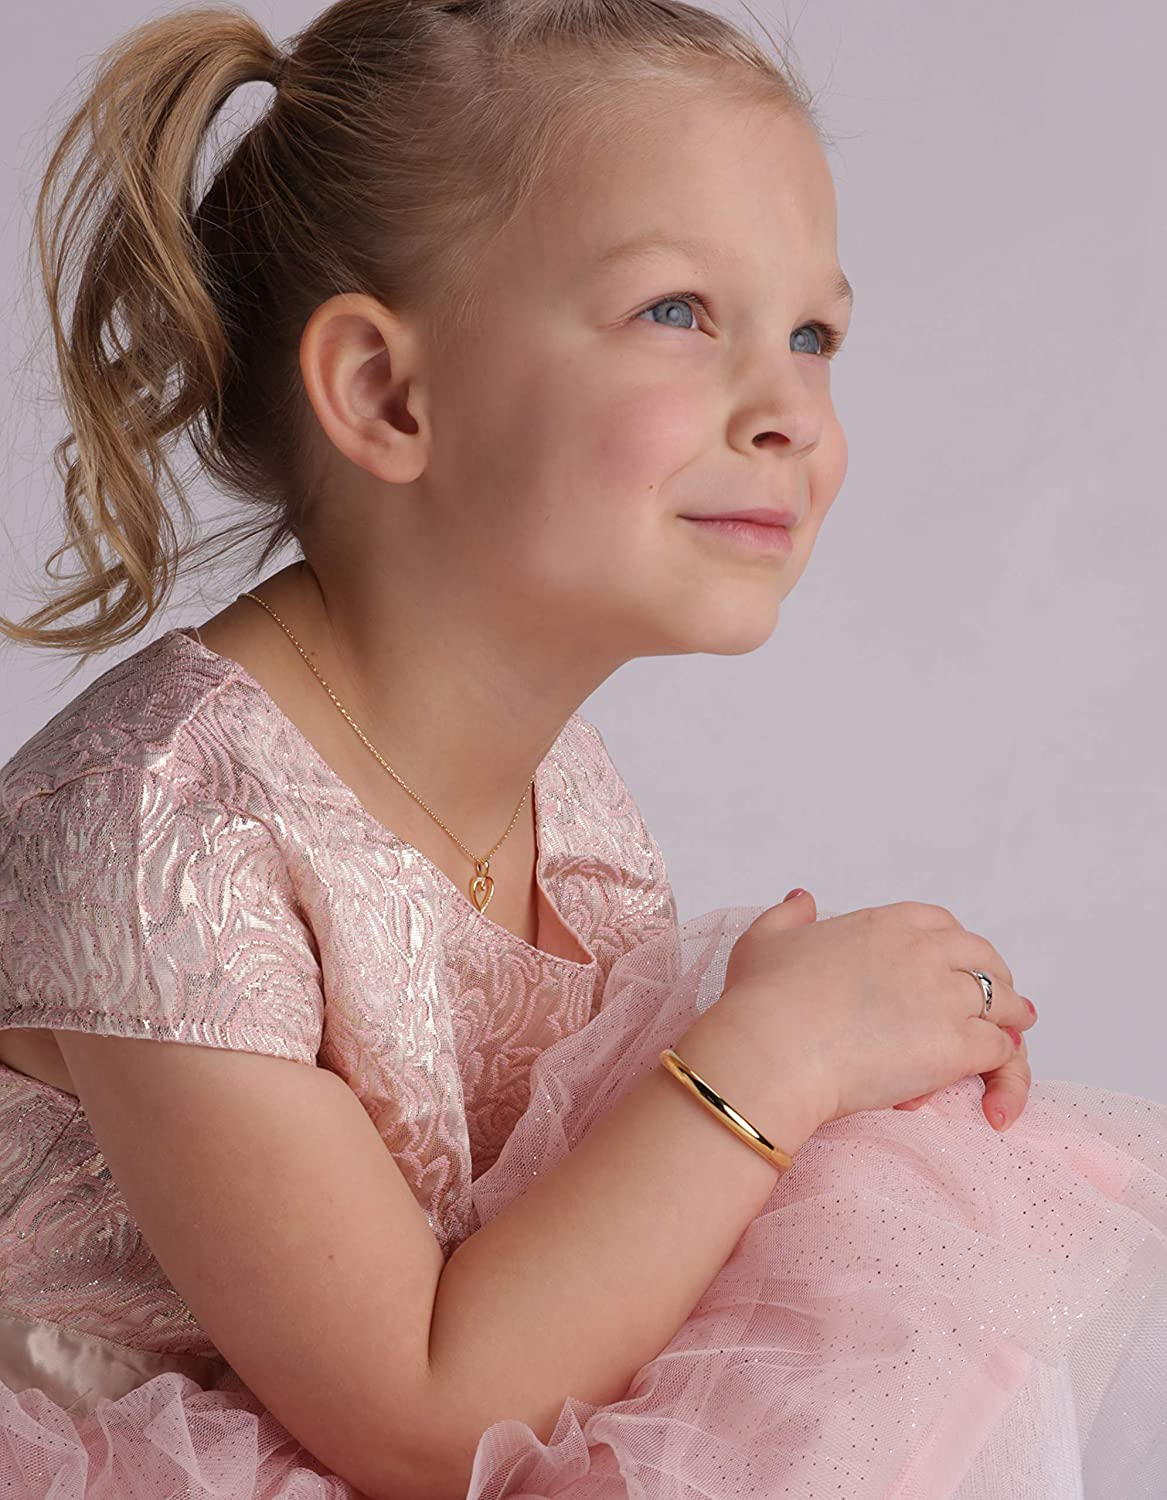 Personalized 14K Gold-Plated or Sterling Silver Baby Bangle Bracelet for Girls